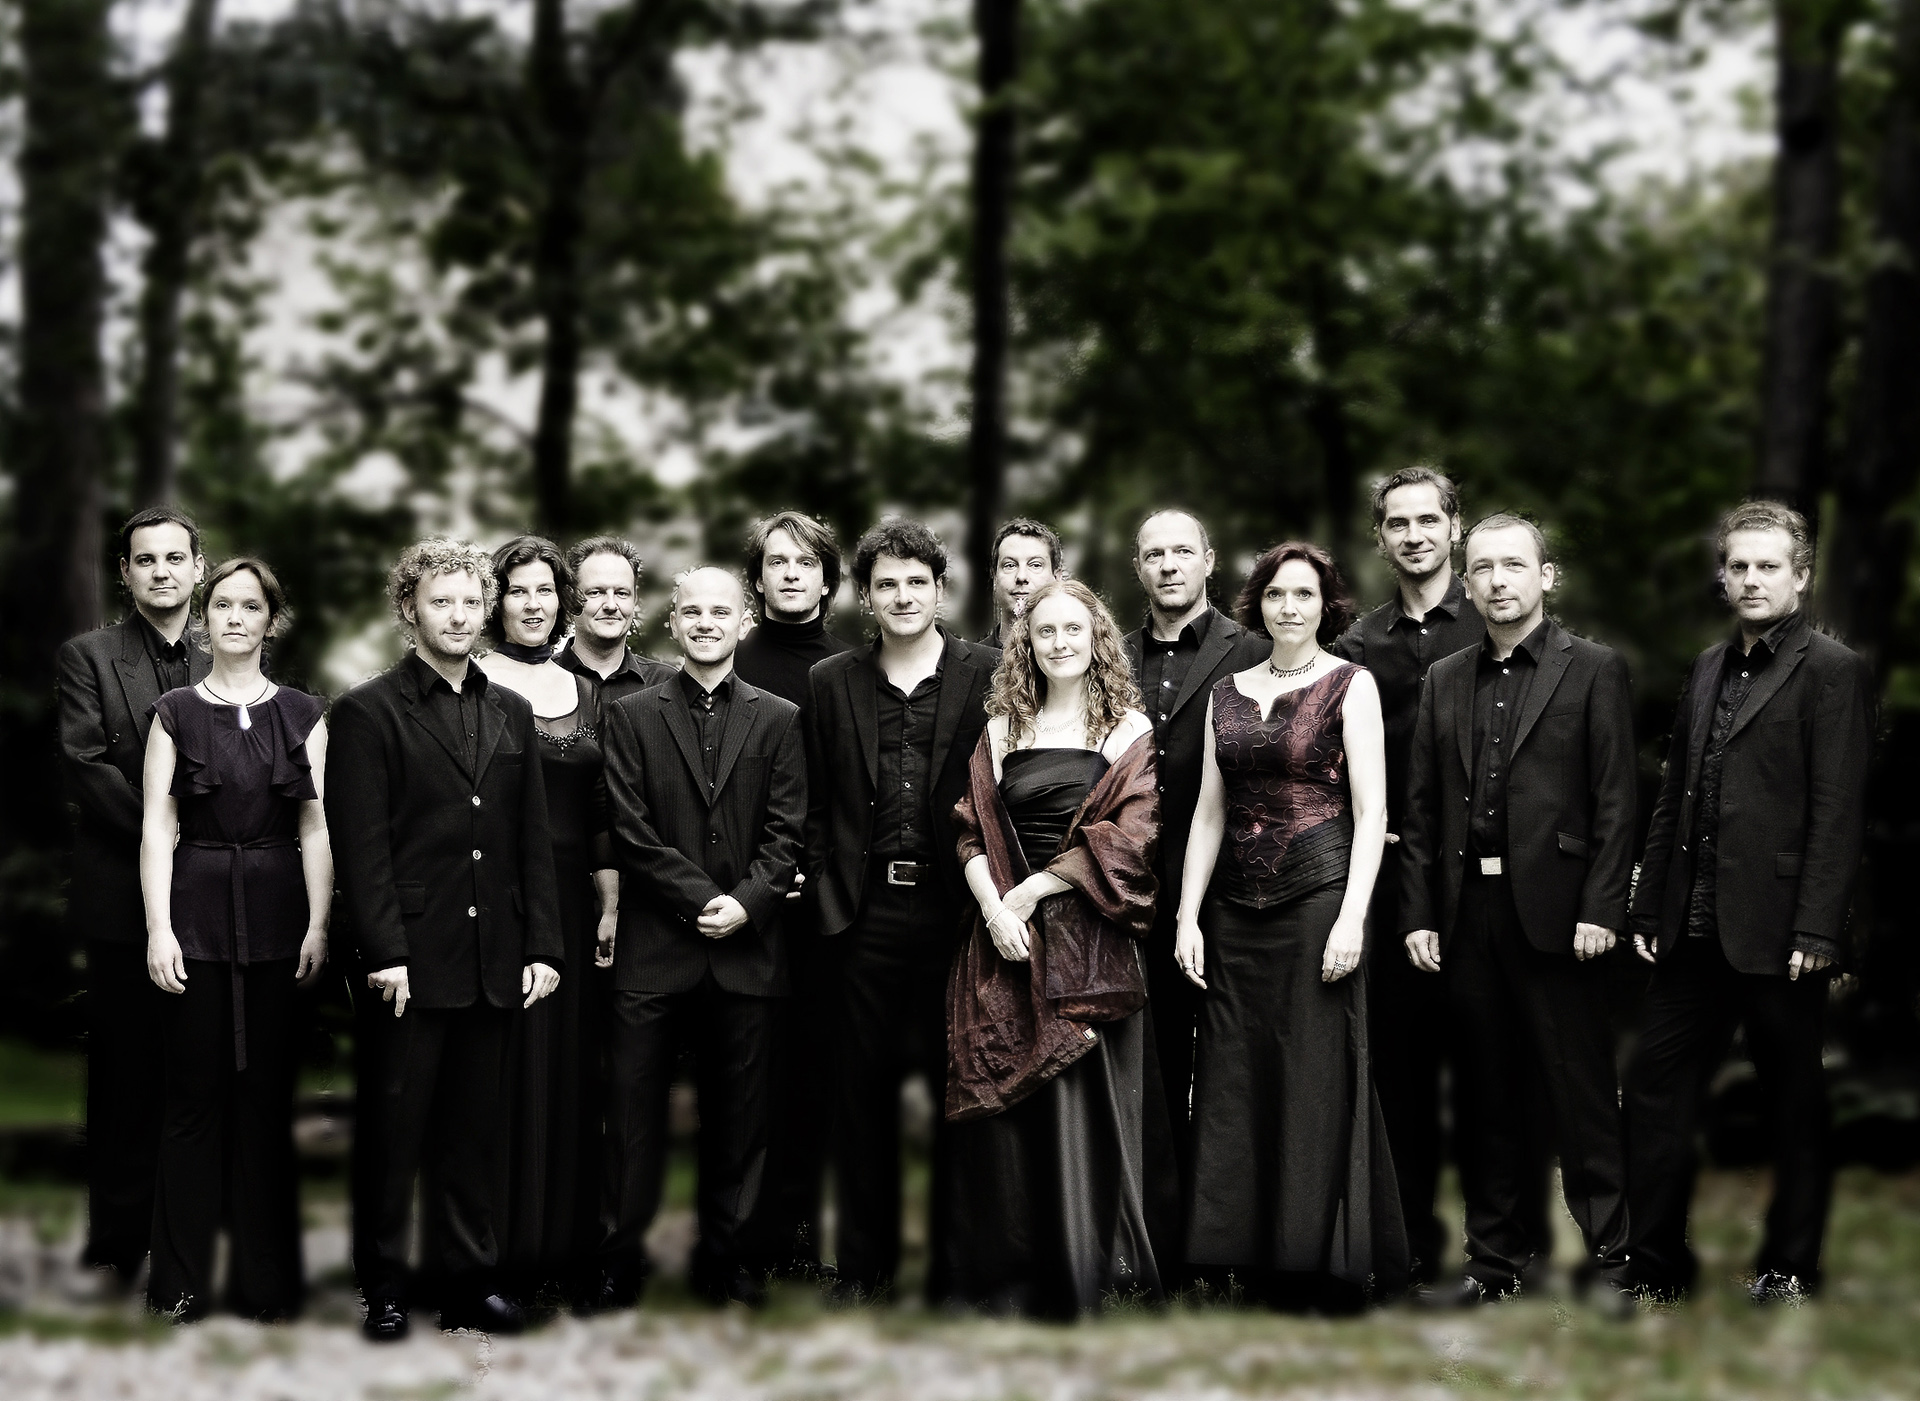 Vocalconsort